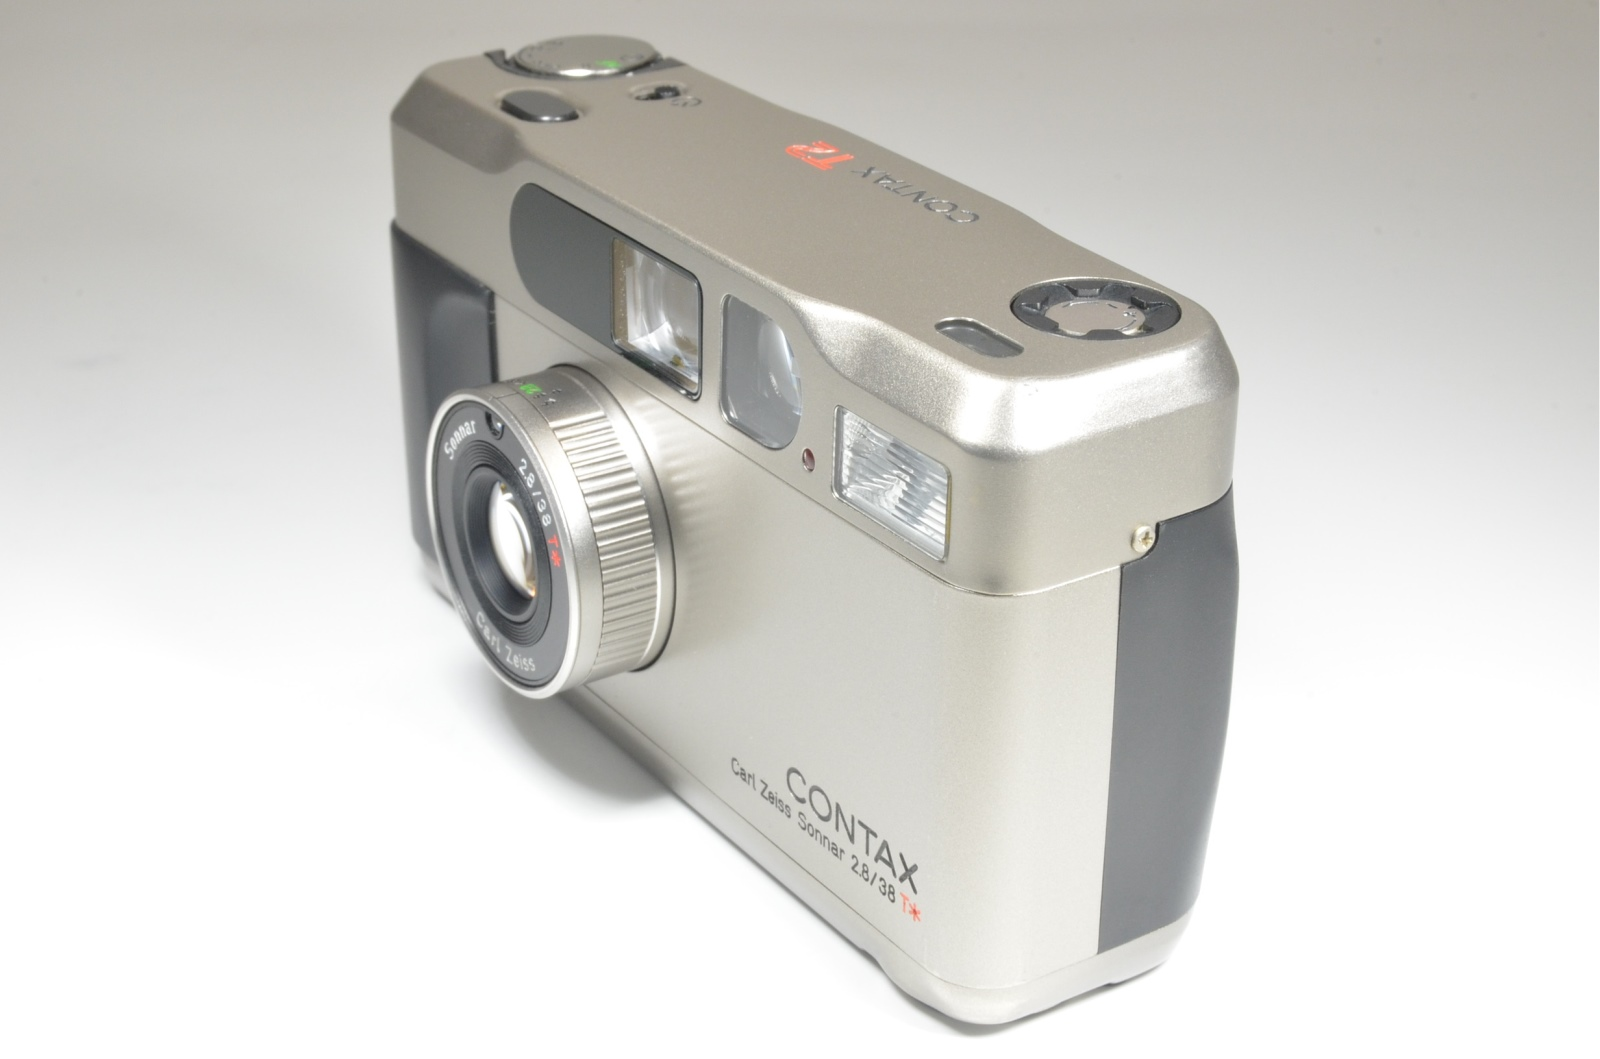 contax t2 titanium silver point & shoot 35mm film camera #a1106 from japan